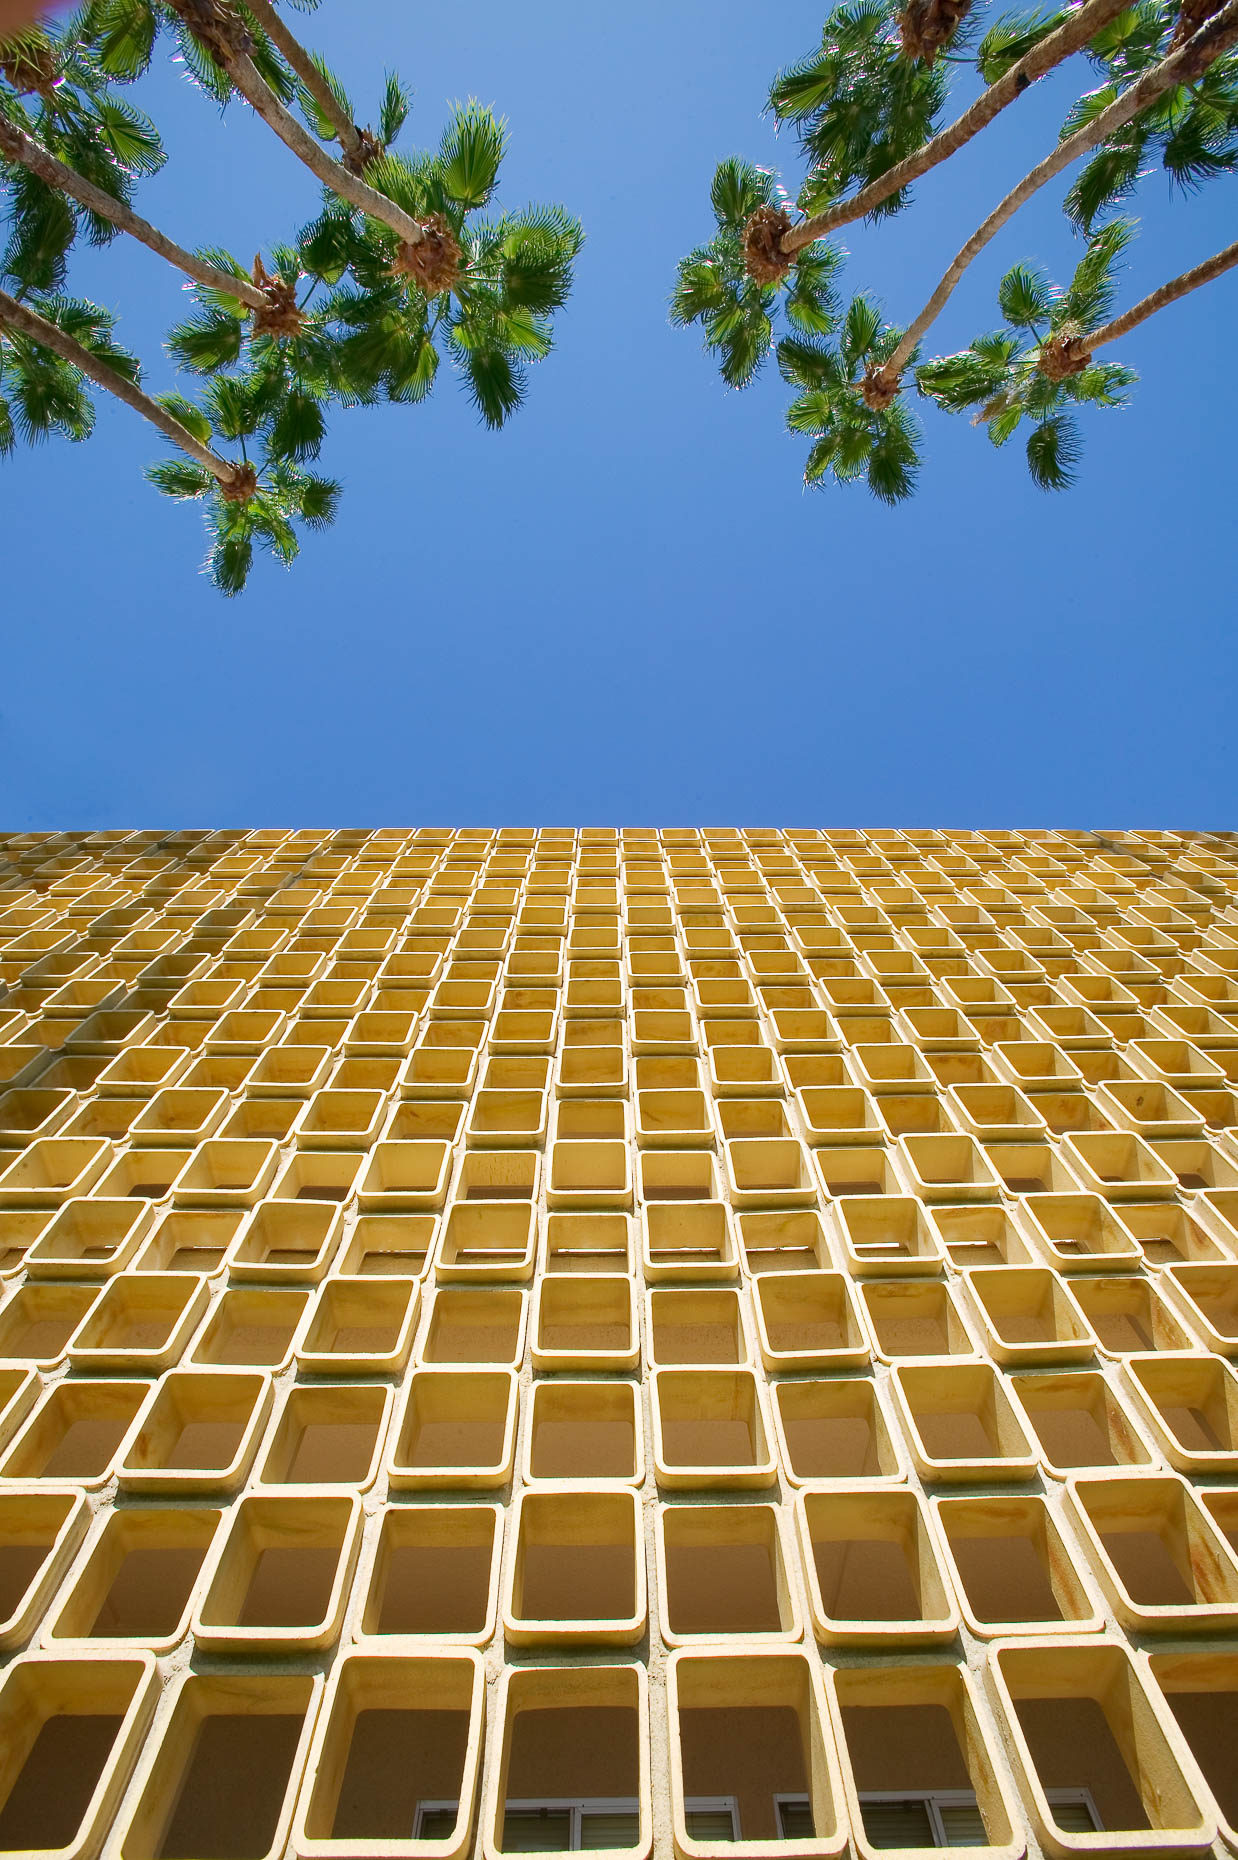 Architecture shot of building with decorative brick façade, looking up toward sky with palm trees. Palm Springs, California,  David Zaitz Photography.